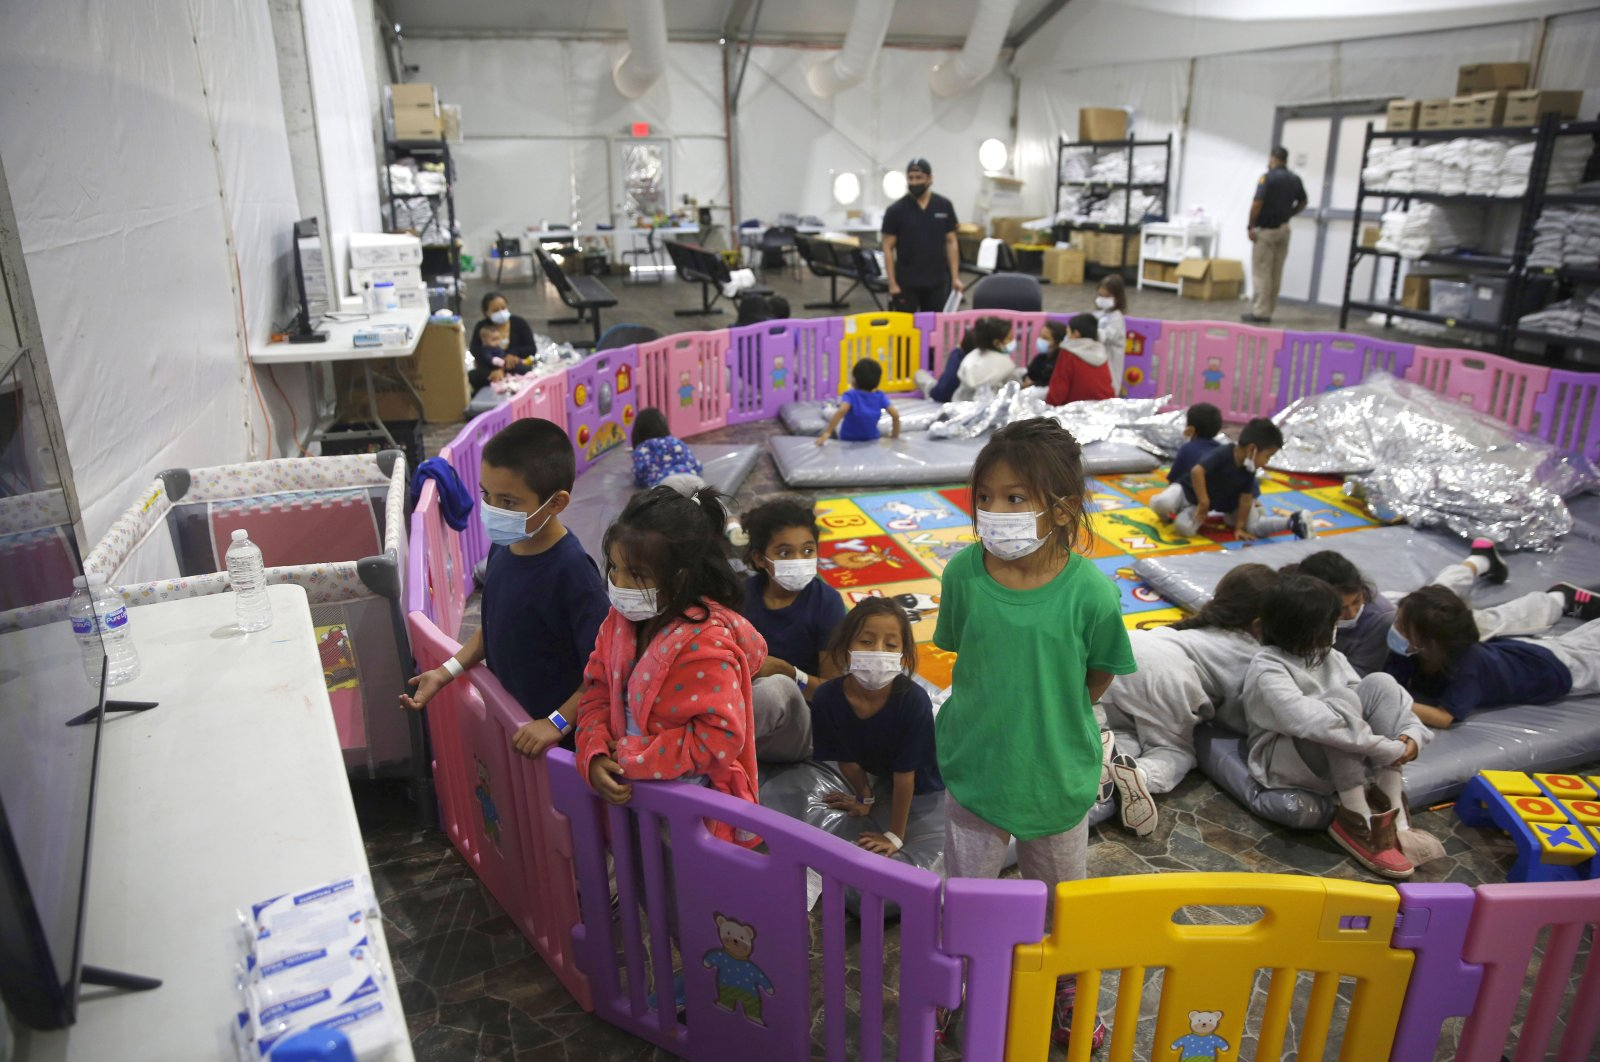 Young unaccompanied migrants, from ages 3 to 9, watch television inside a playpen at the U.S. Customs and Border Protection facility, the main detention center for unaccompanied children in the Rio Grande Valley, in Donna, Texas. U.S, on March 30, 2021. (AP Photo)